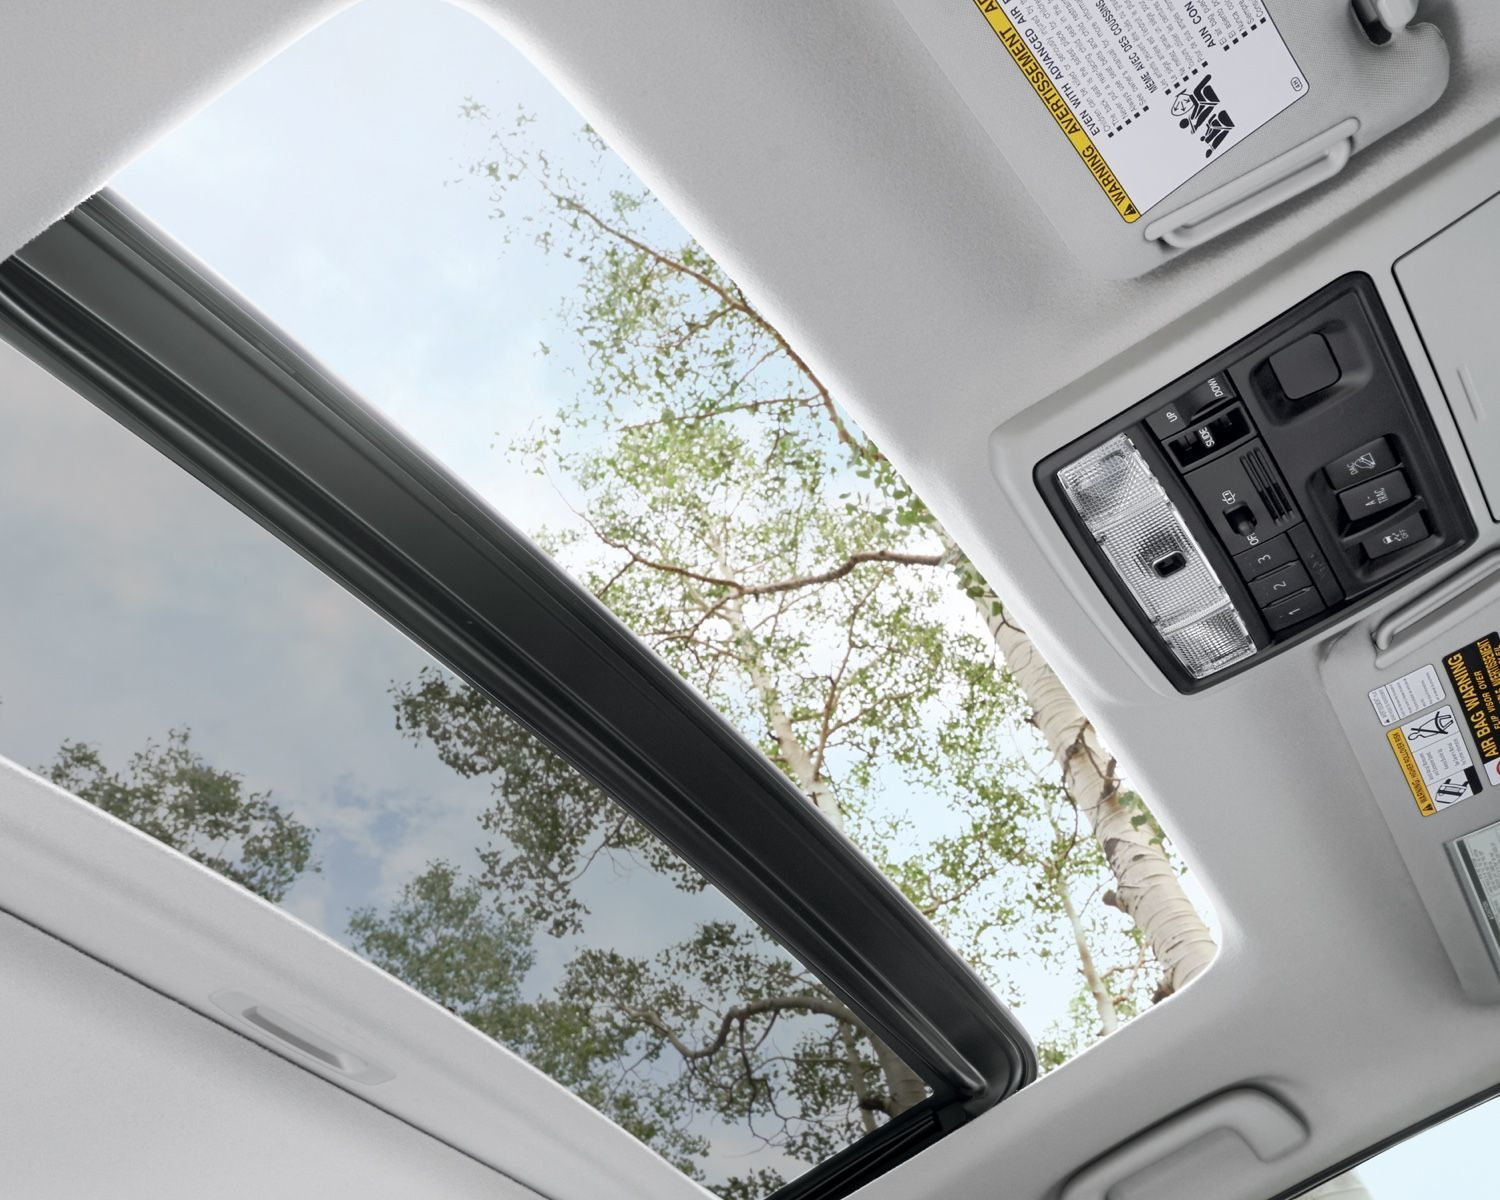 4Runner SR5 Power Moonroof